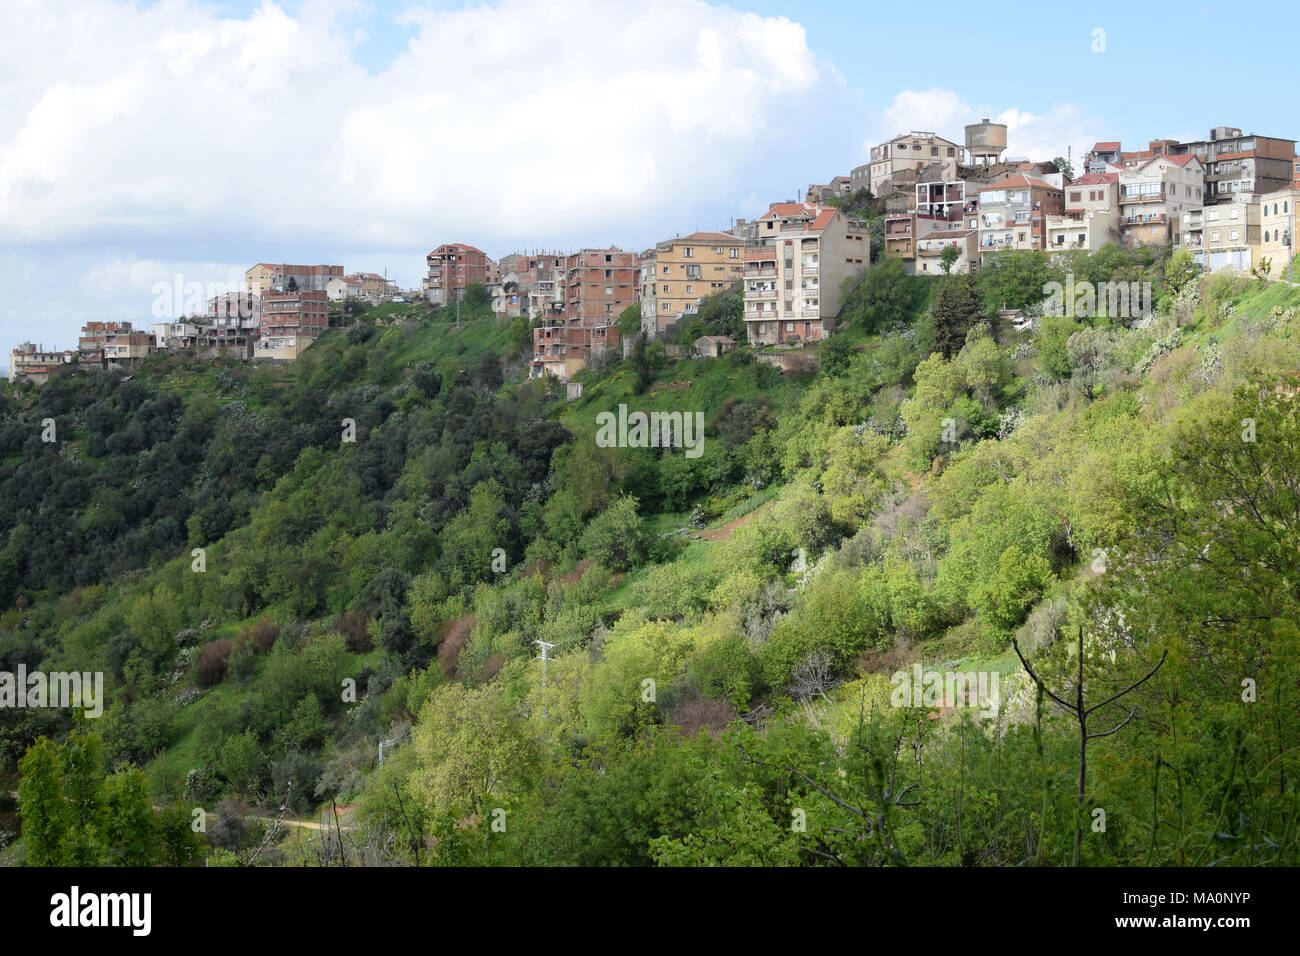 A general view of a village in Kabylie, Tizi ouzou, Algeria - Stock Image